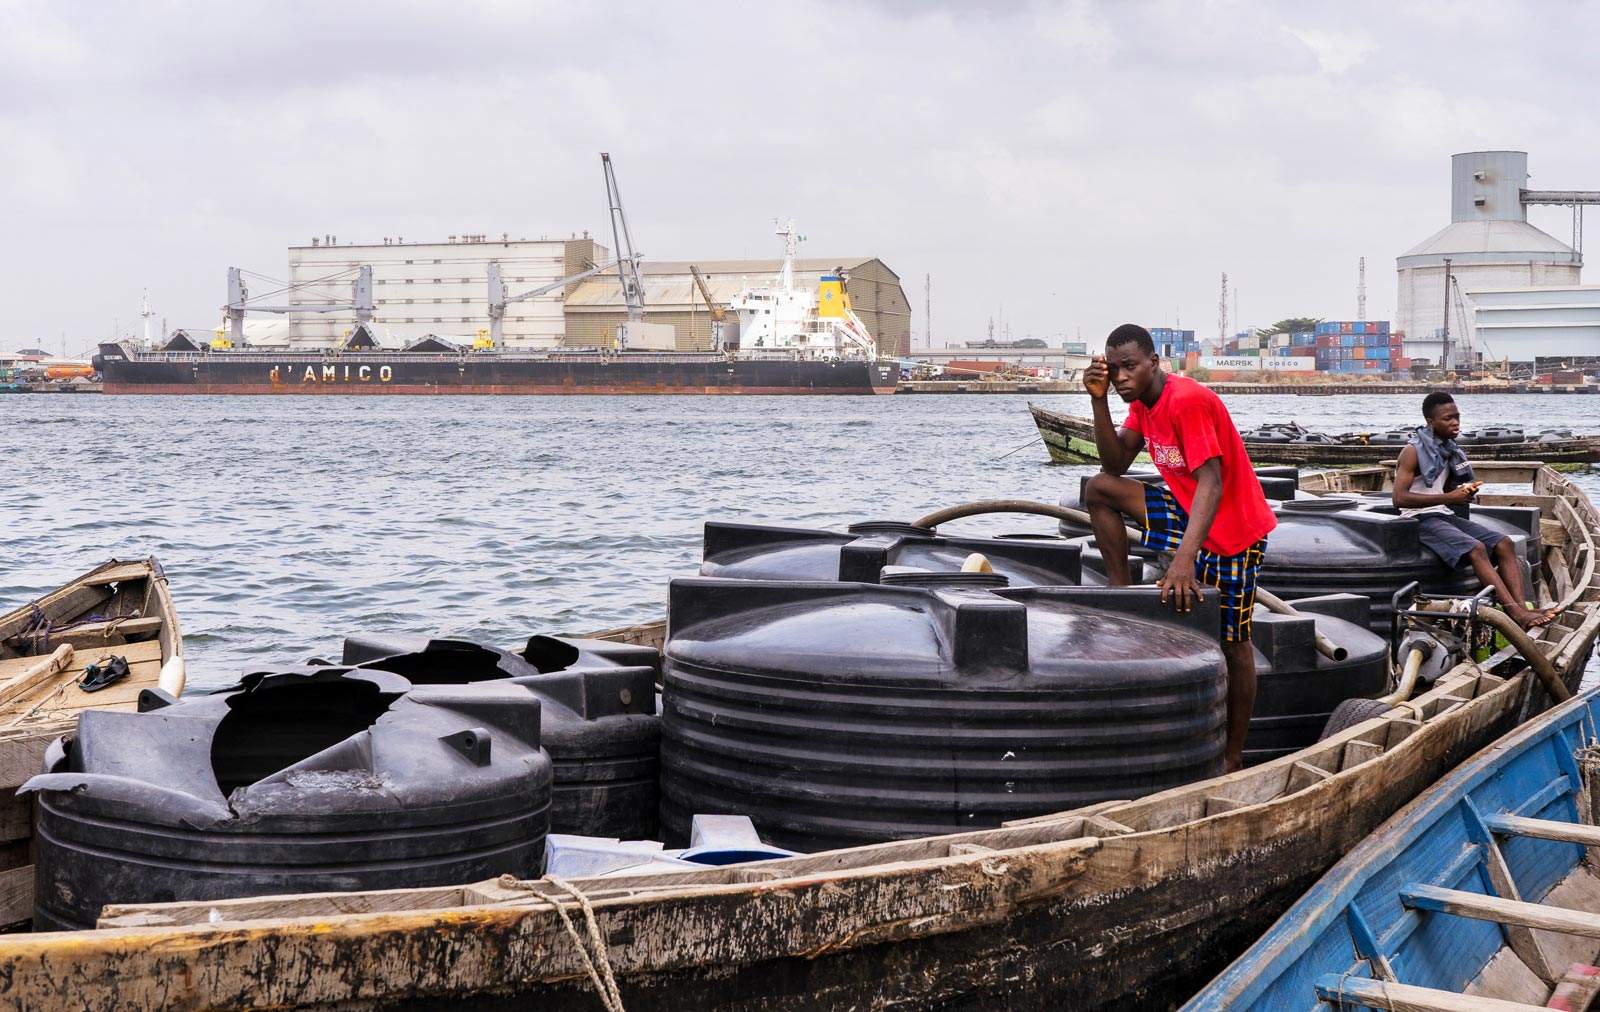 Two young men on a wooden boat at a dock pumping water out of large black water containers.